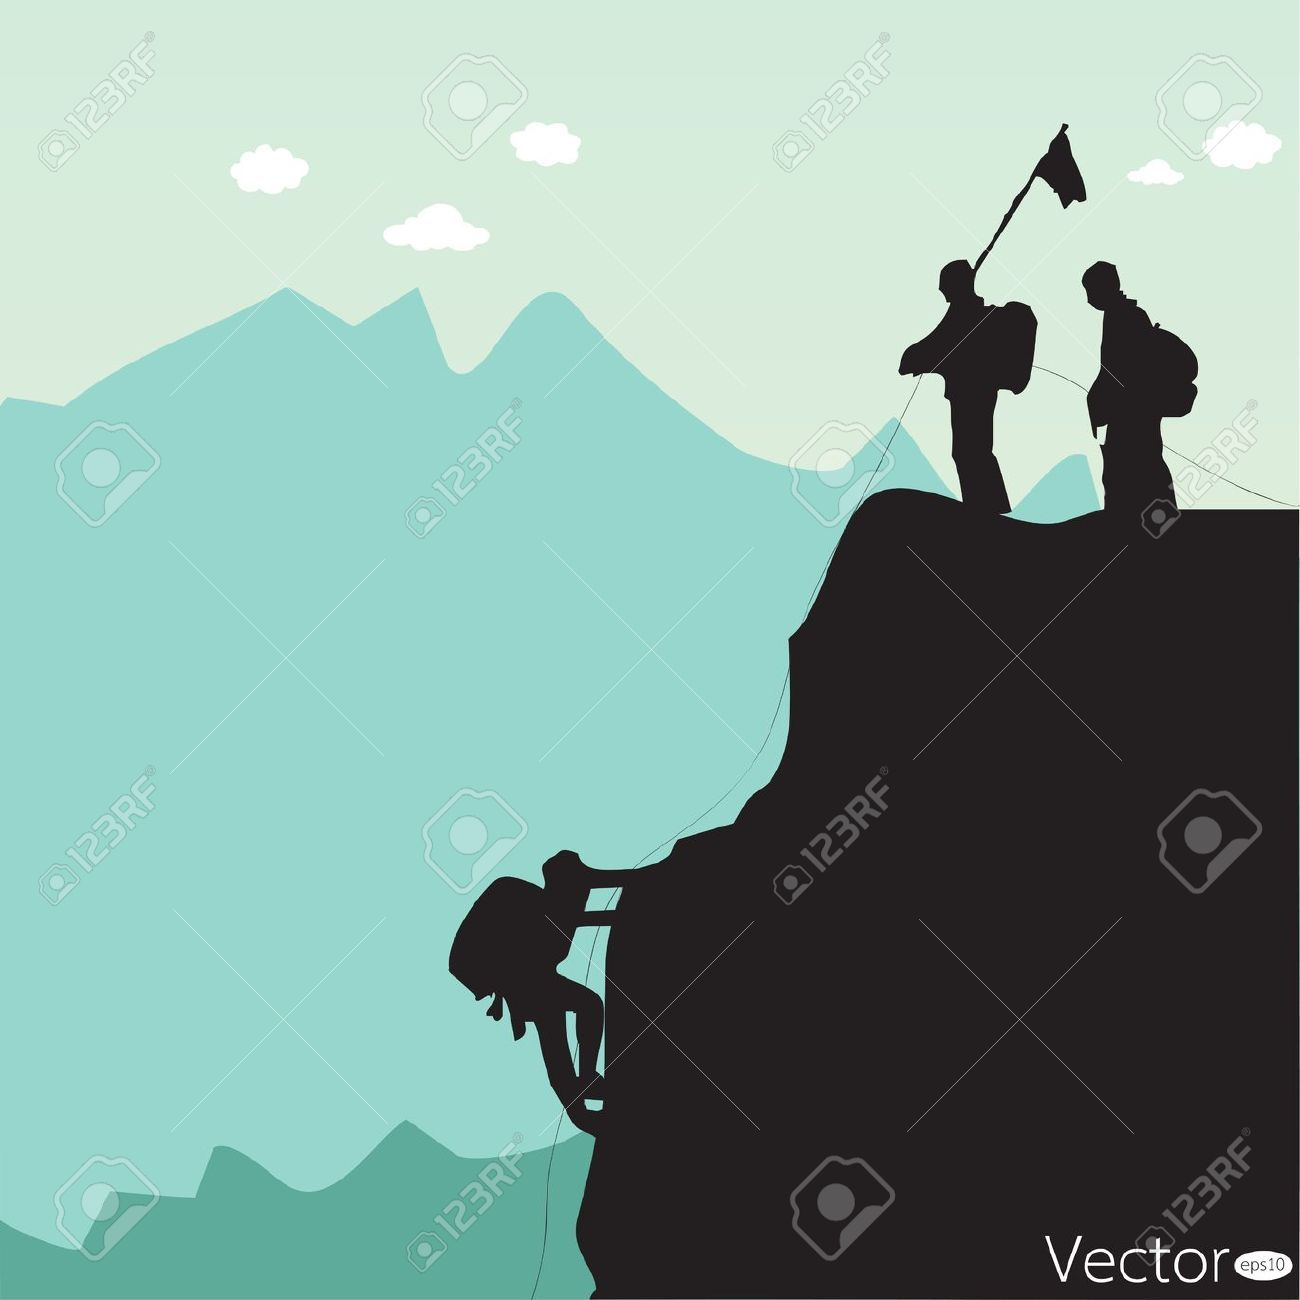 Climbing Mountain Stock Vector Illustration And Royalty Free.